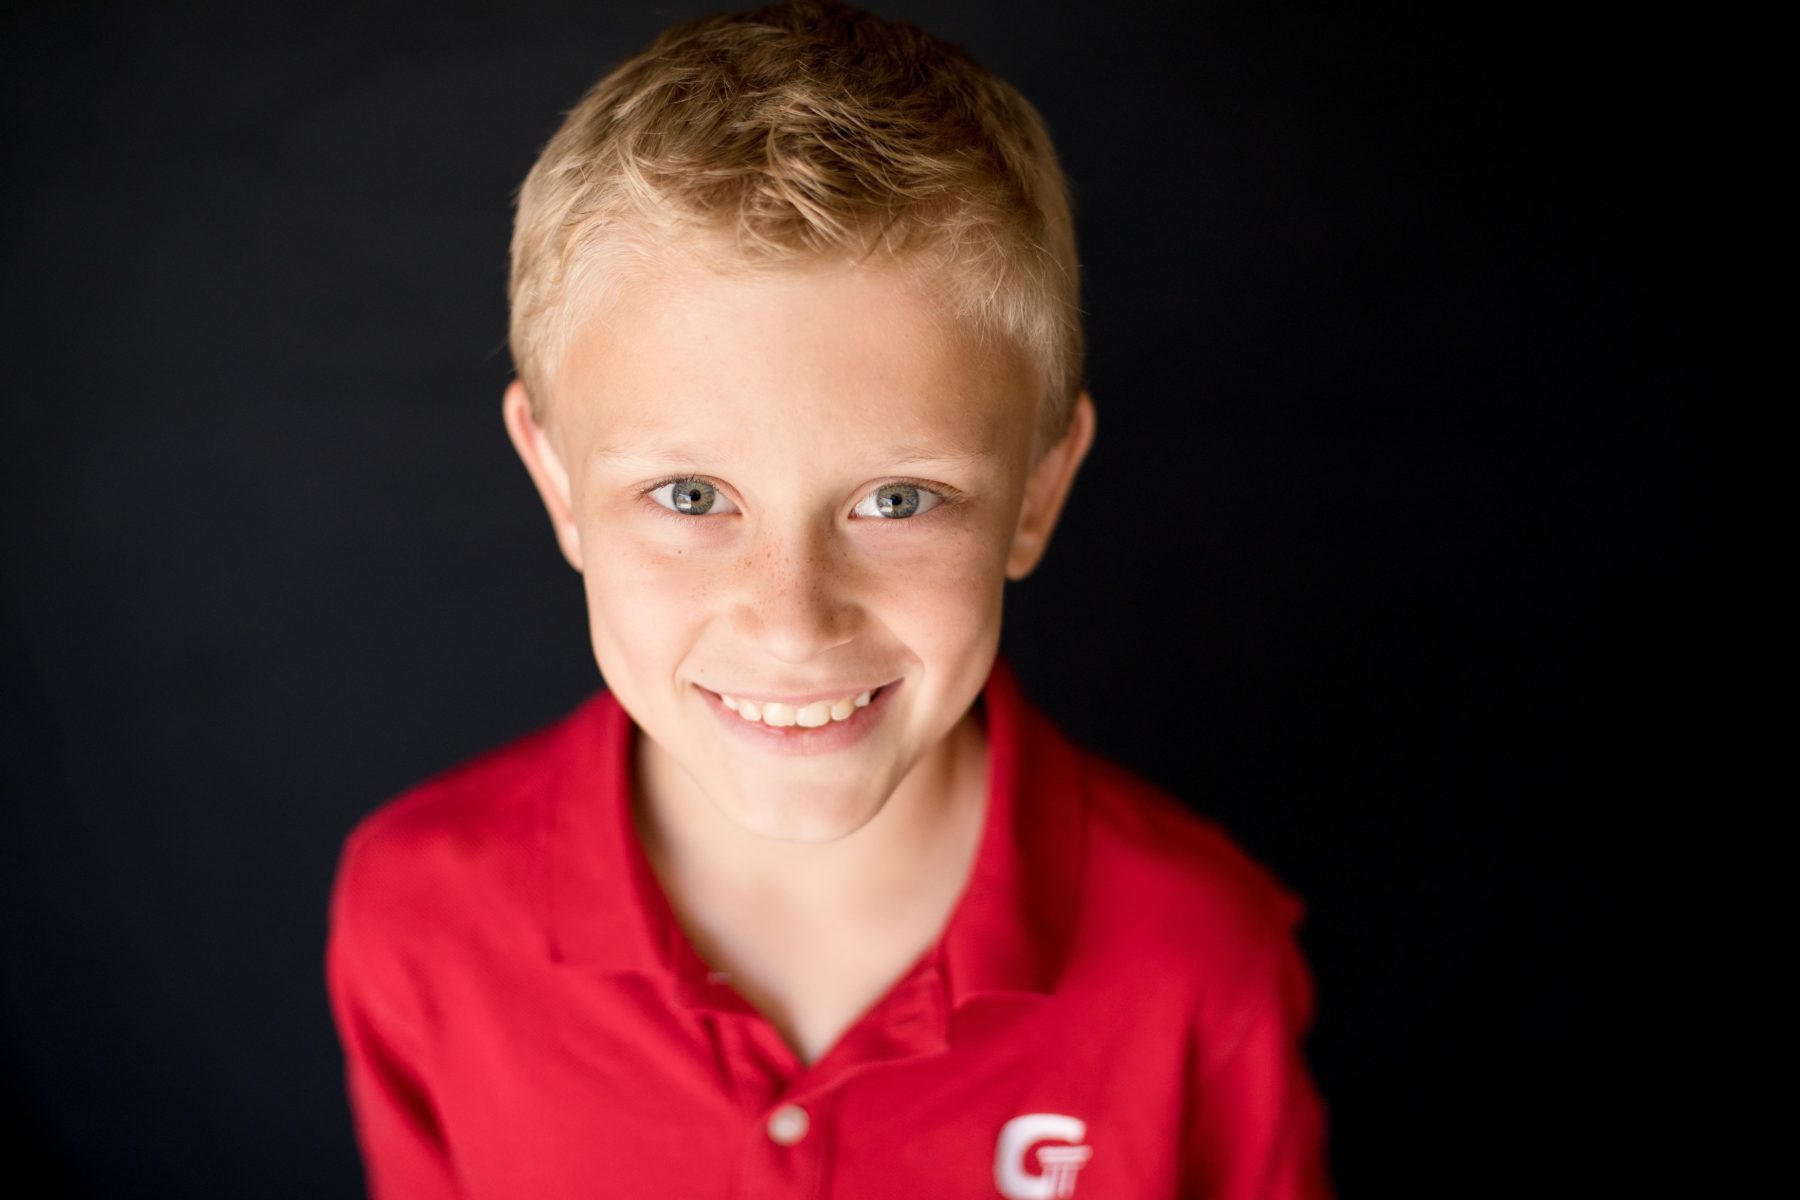 Modern School Portraits (Shelly Niehaus|Child Photographer Prosper, TX}